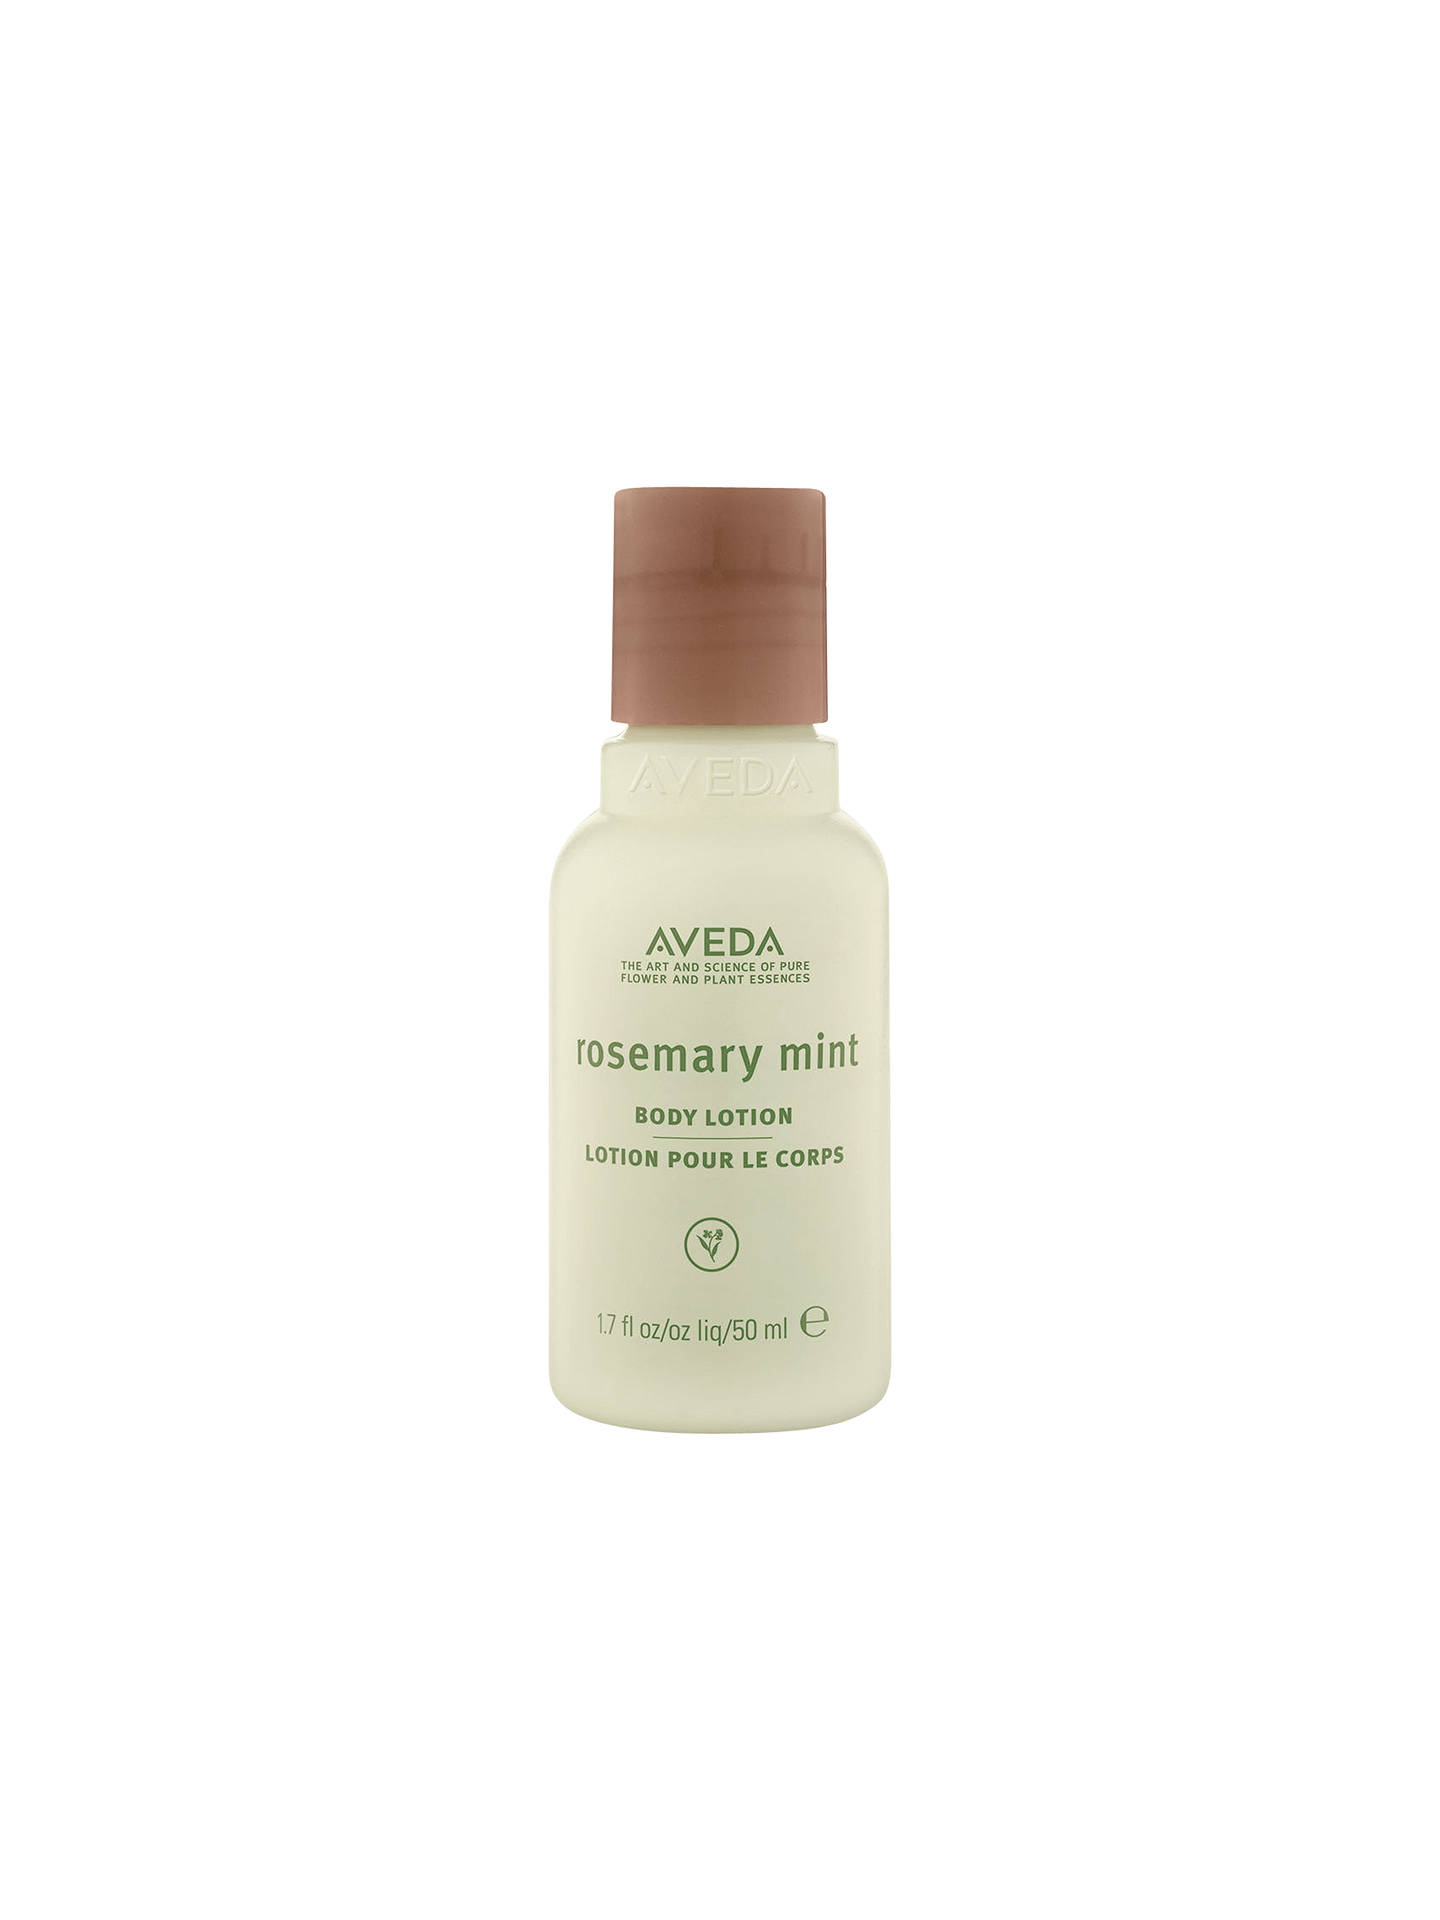 Buy Aveda Rosemary Mint Body Lotion, 50ml Online at johnlewis.com